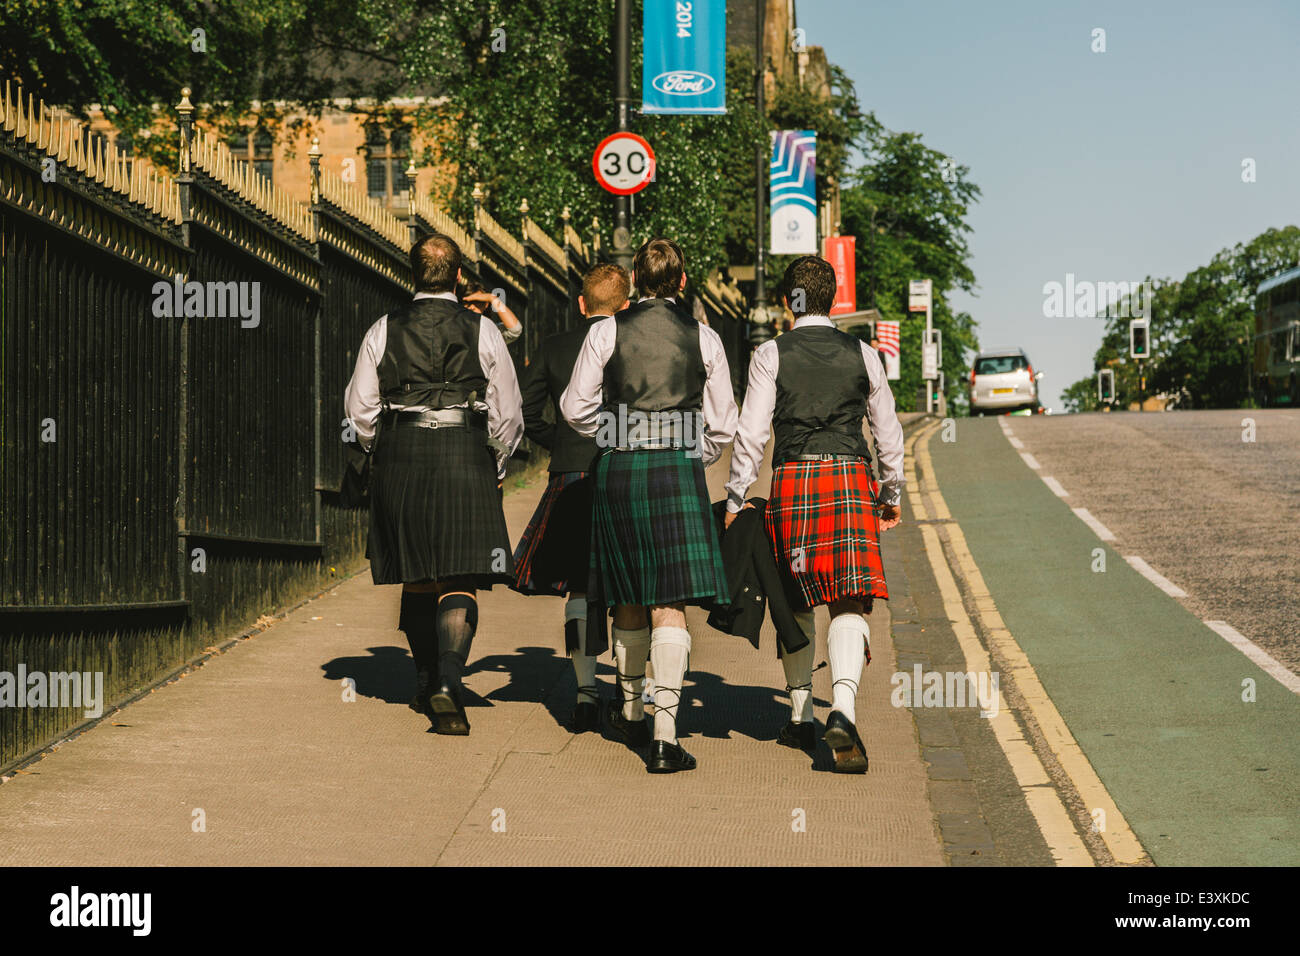 A group of young scottish students wearing kilt dress walking to Glasgow University for graduation day, Glasgow, - Stock Image